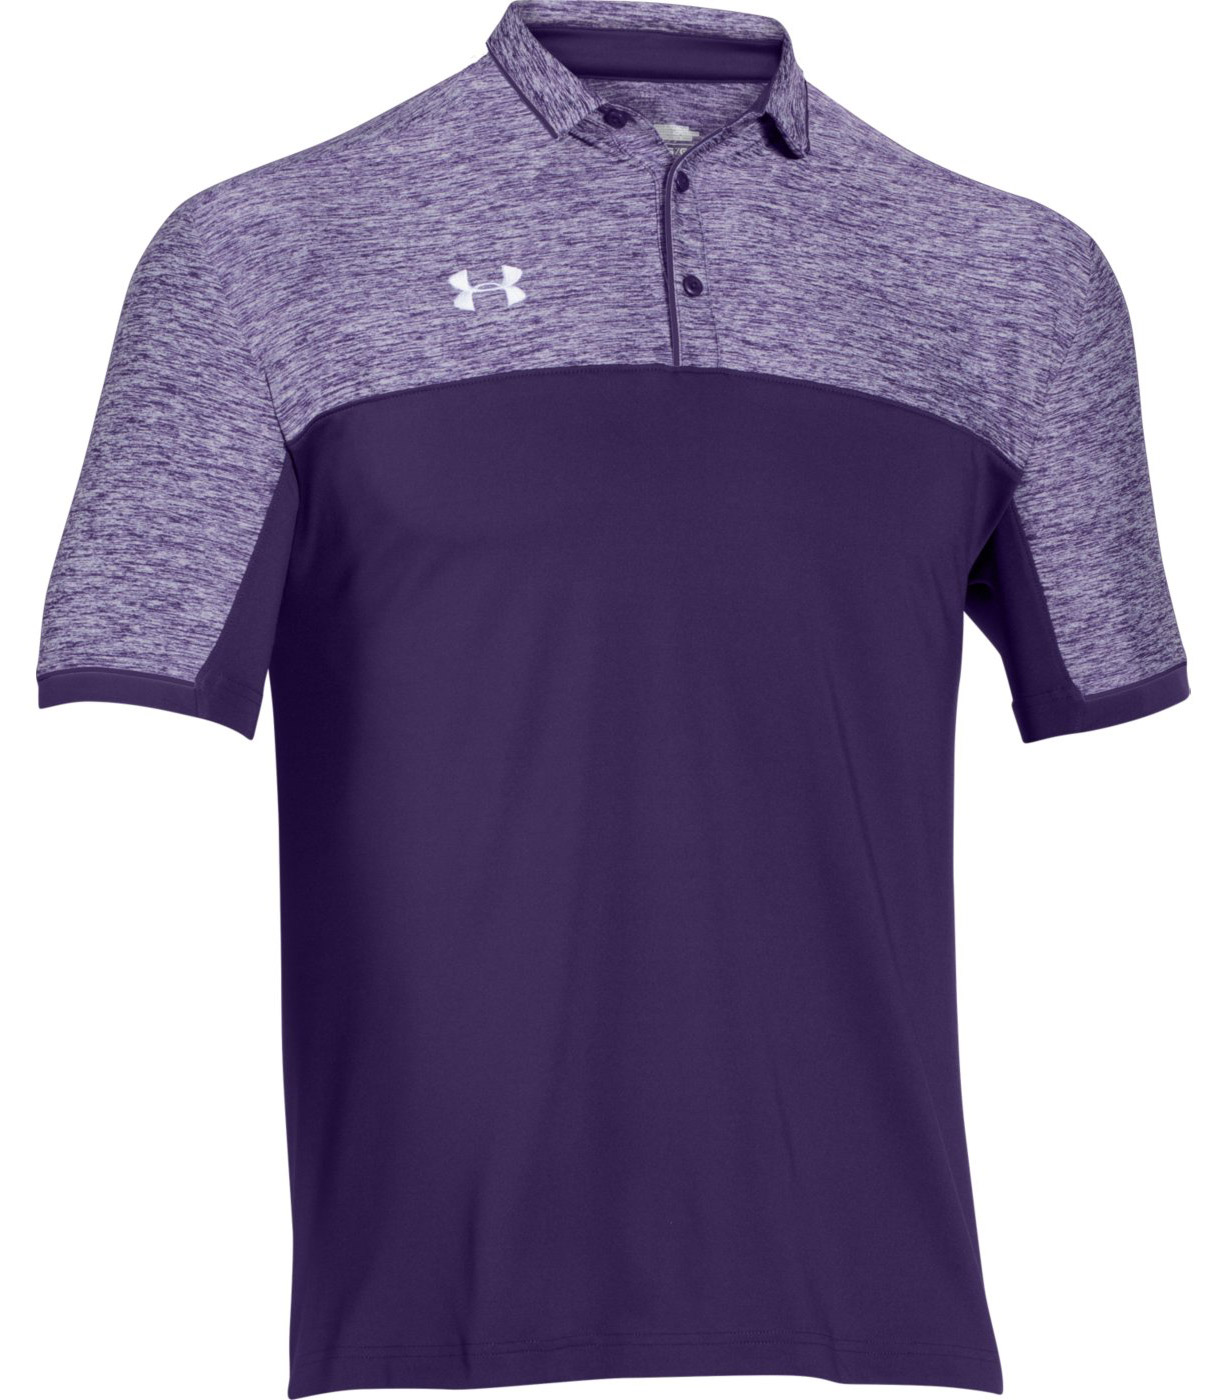 Under armour team podium men 39 s polo shirt for Under armour i will shirt